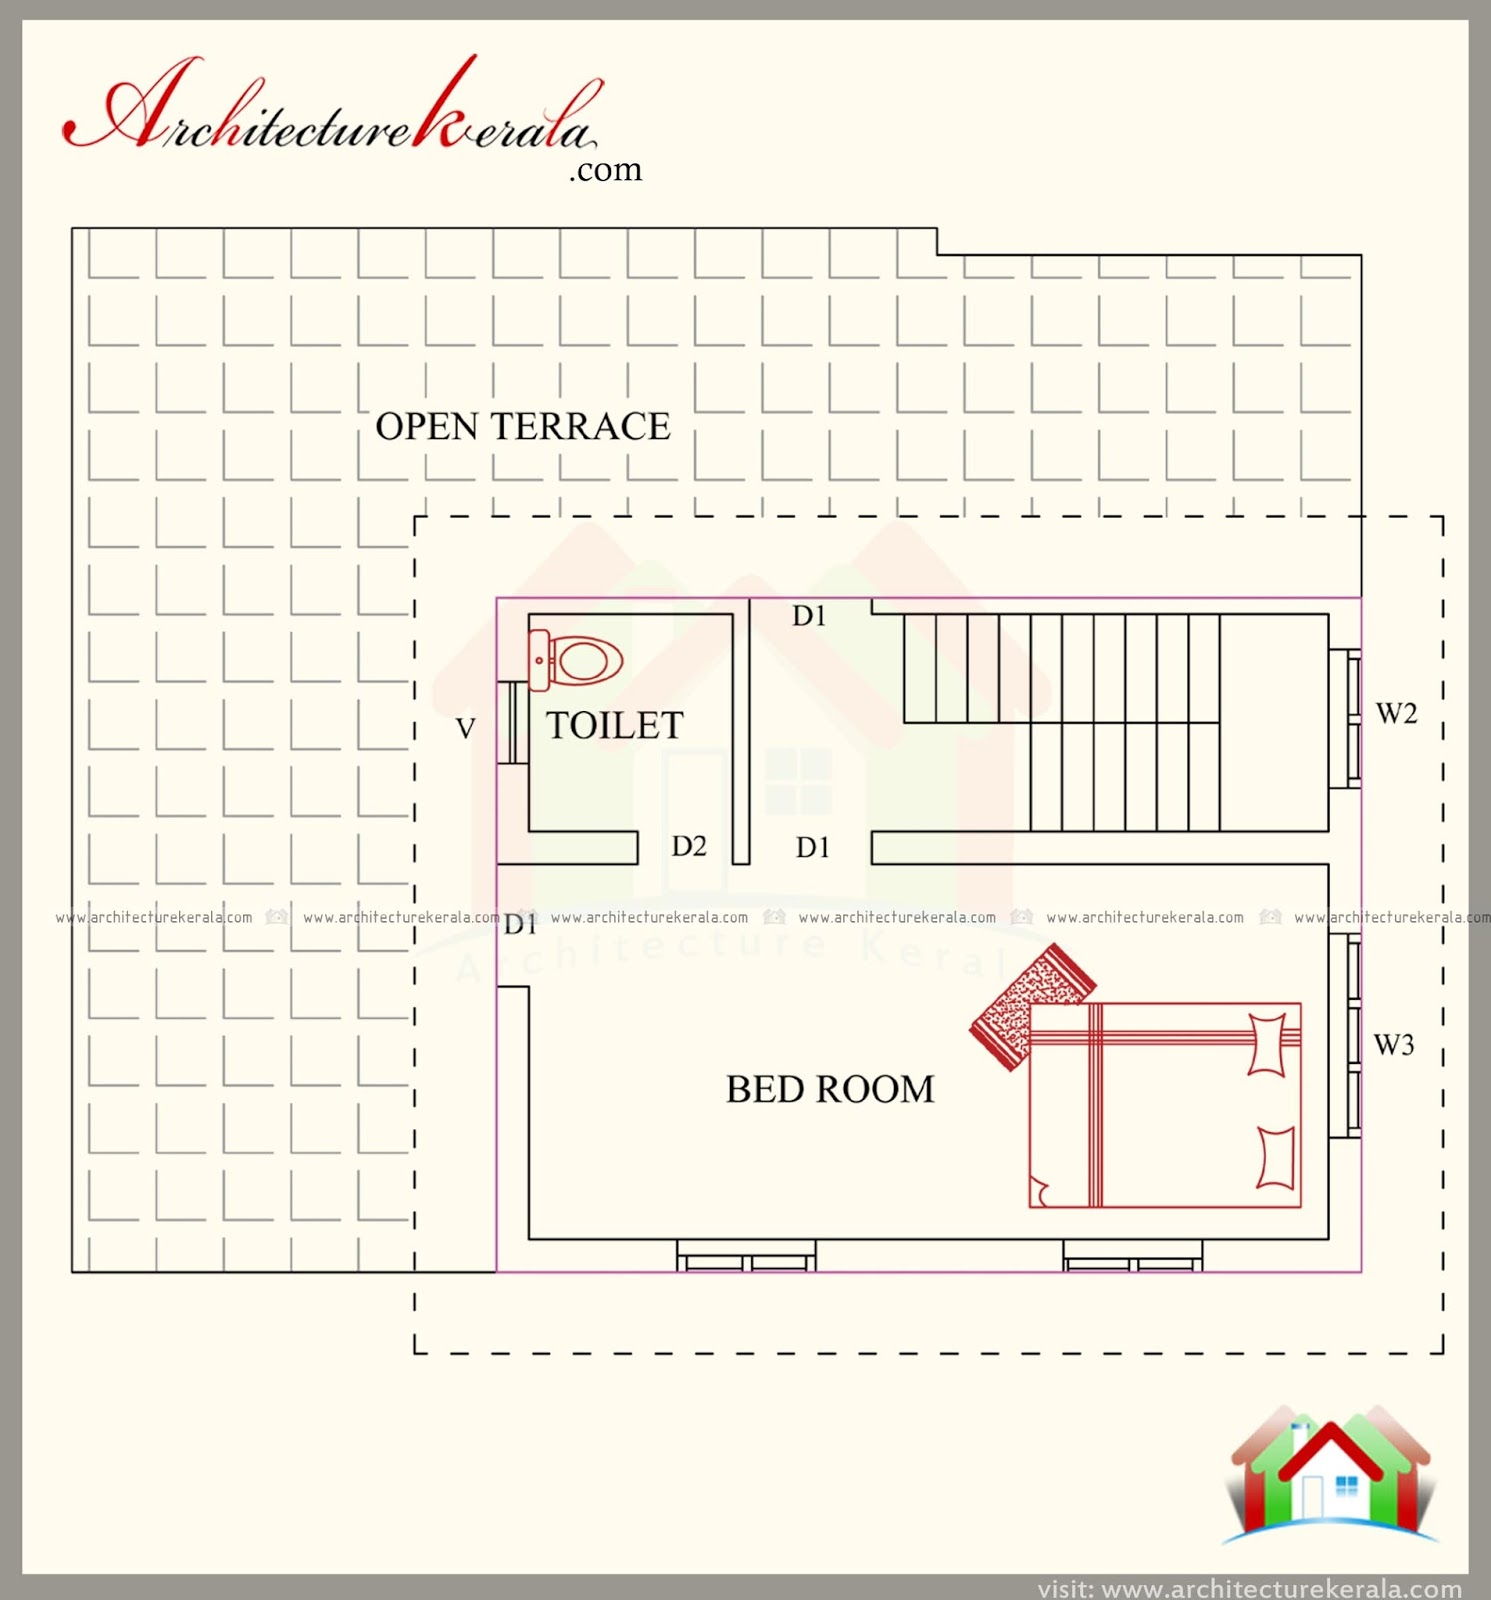 3 bedroom house plan with elevation